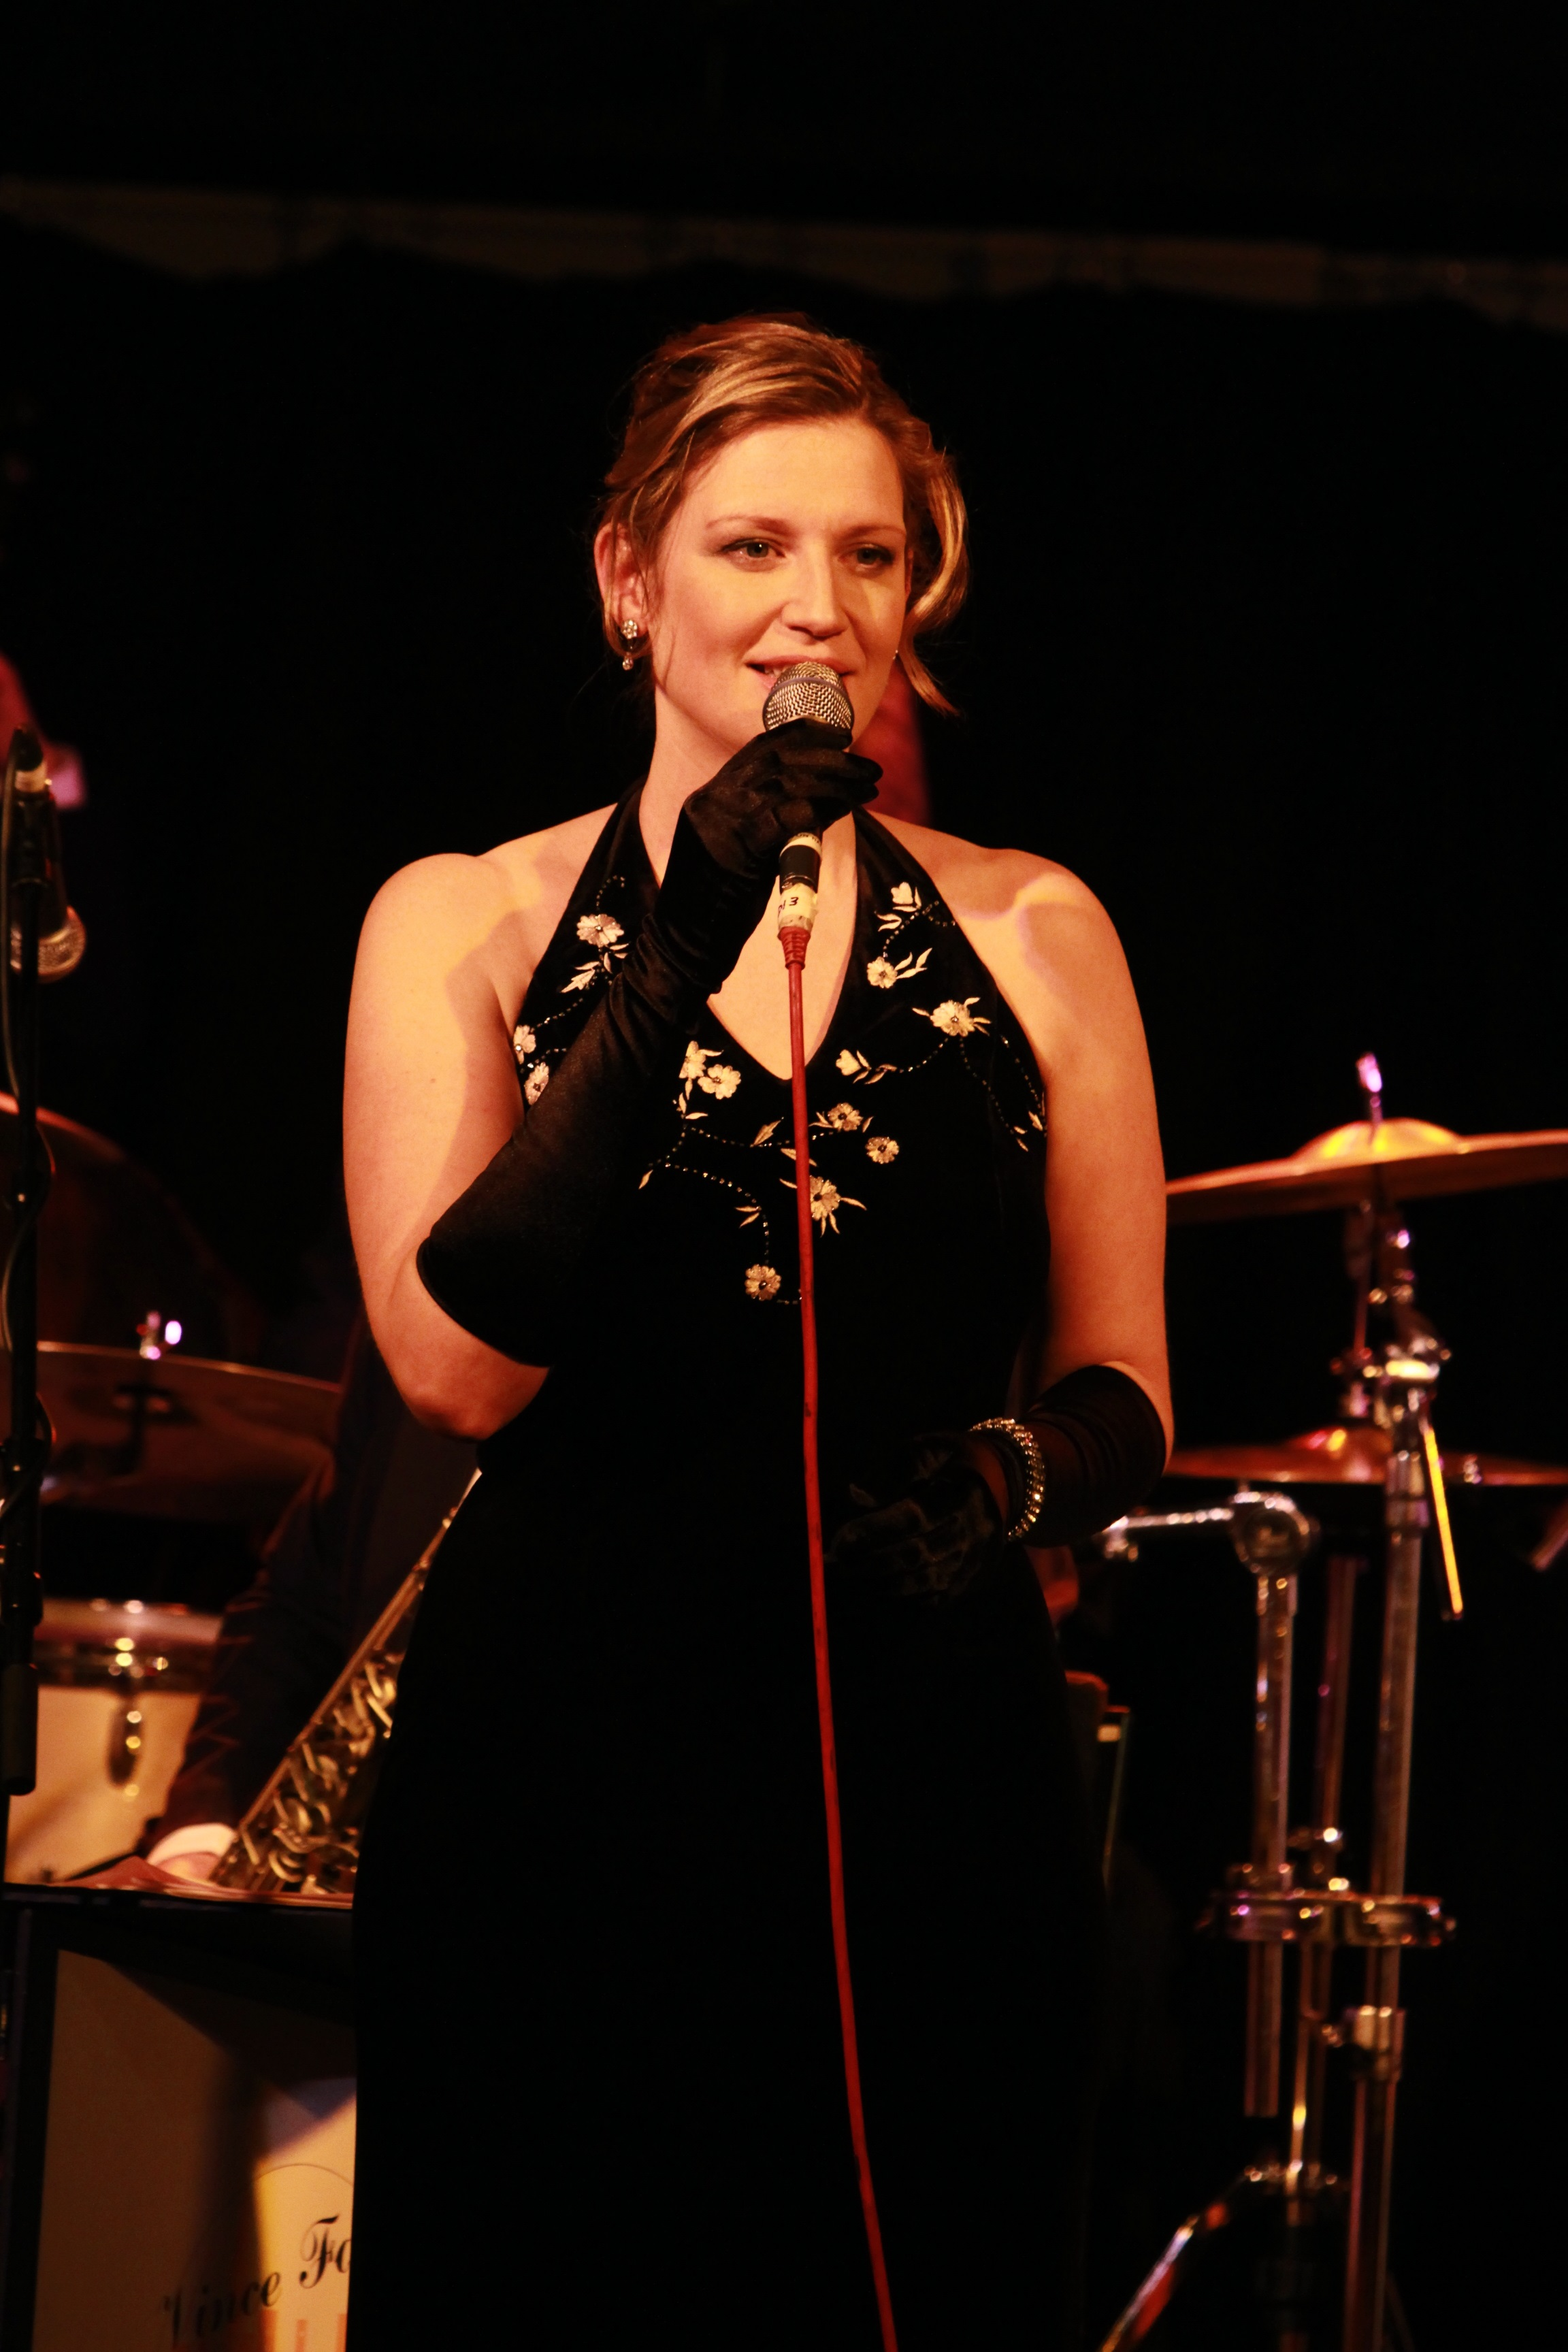 Burford Jazz Presents: Cathering Sykes 'The music of Peggy Lee + A touch of Chrstmas Festiveness!